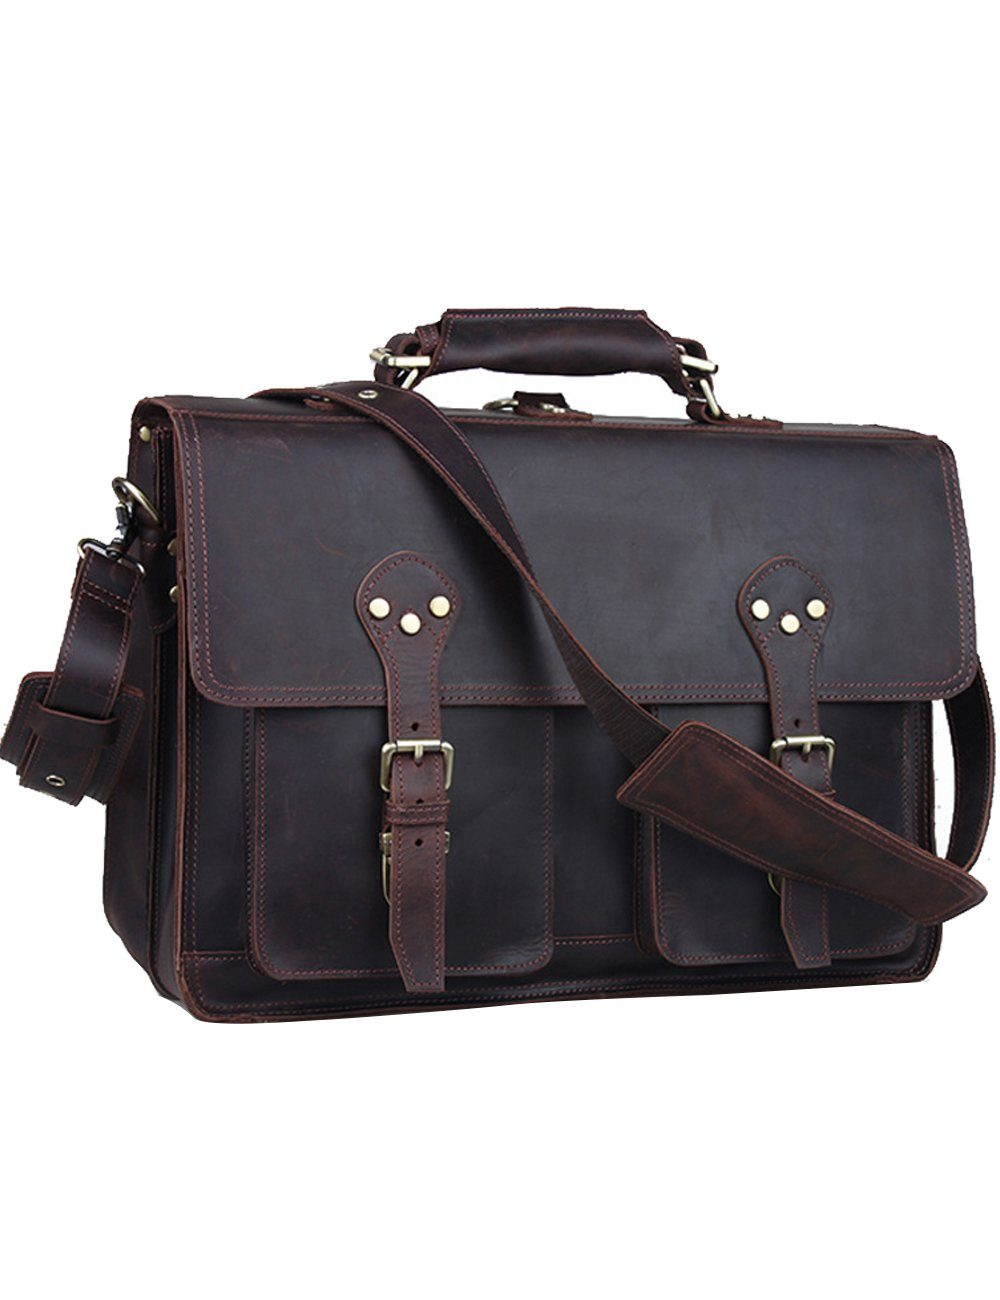 Menschwear Sac de messagerie en cuir Sac à main Marron BHaW8